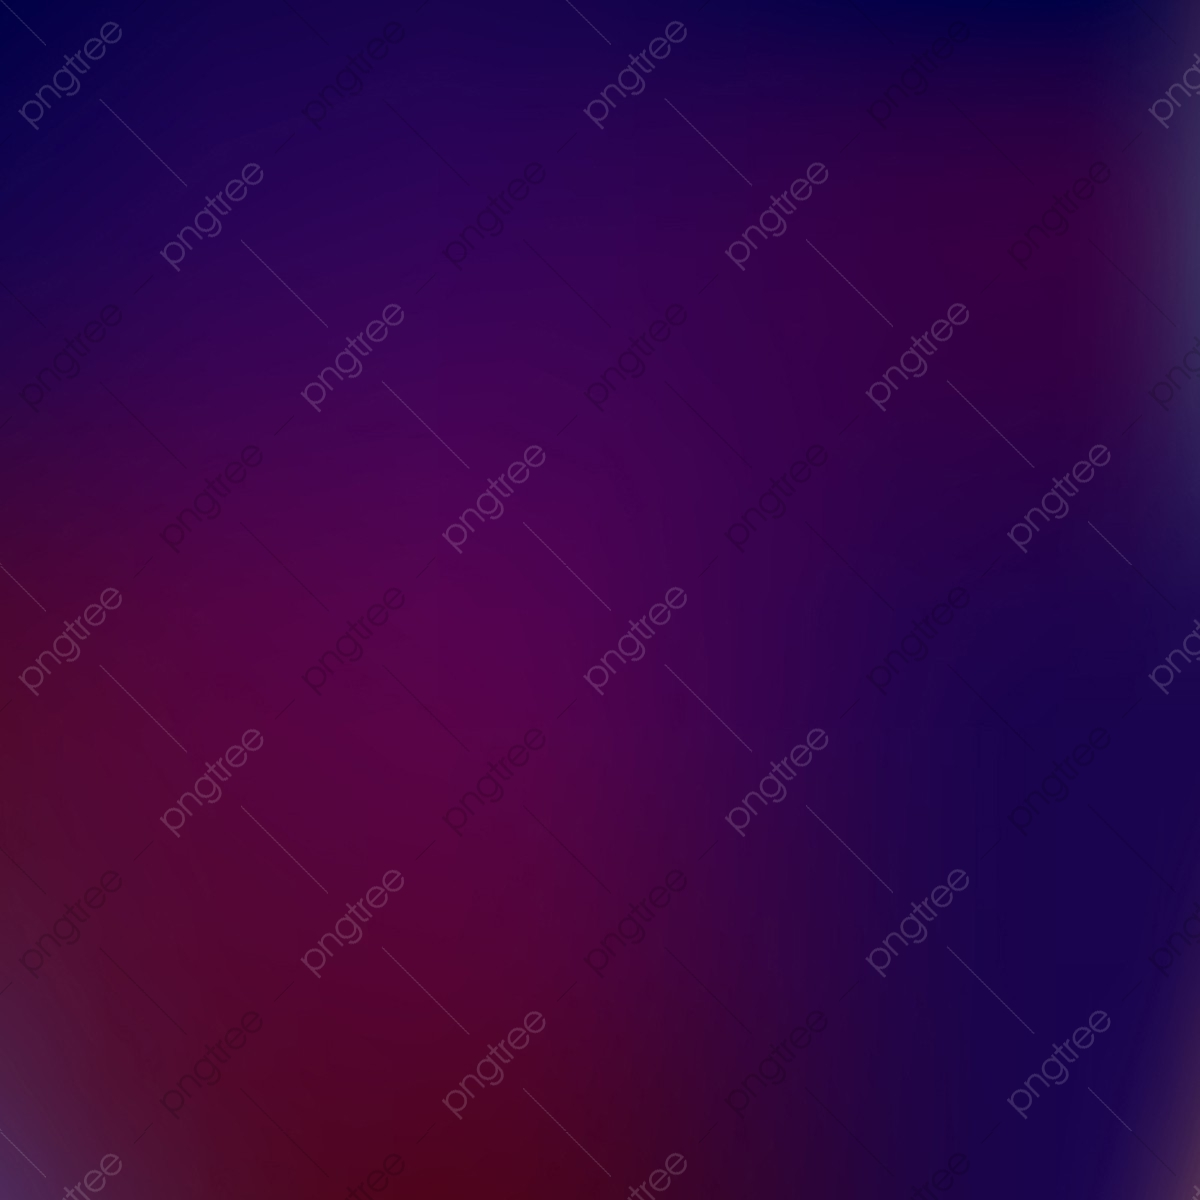 Elegant Gradient Abstract Vector Backgrounds Illustration